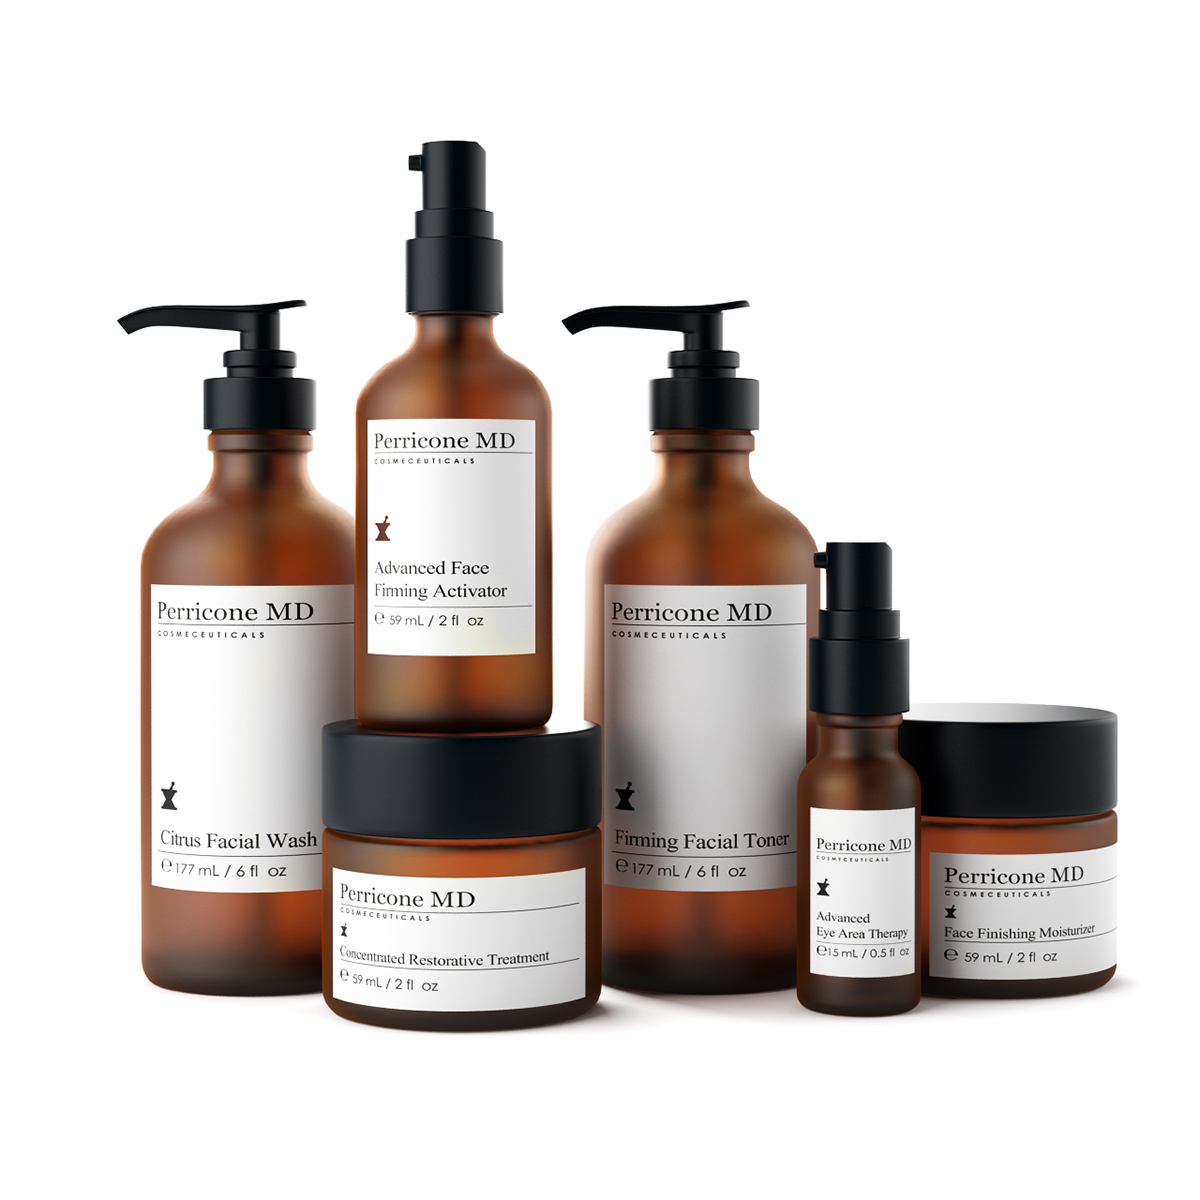 3d model: Skincare Set by Perricone on Behance